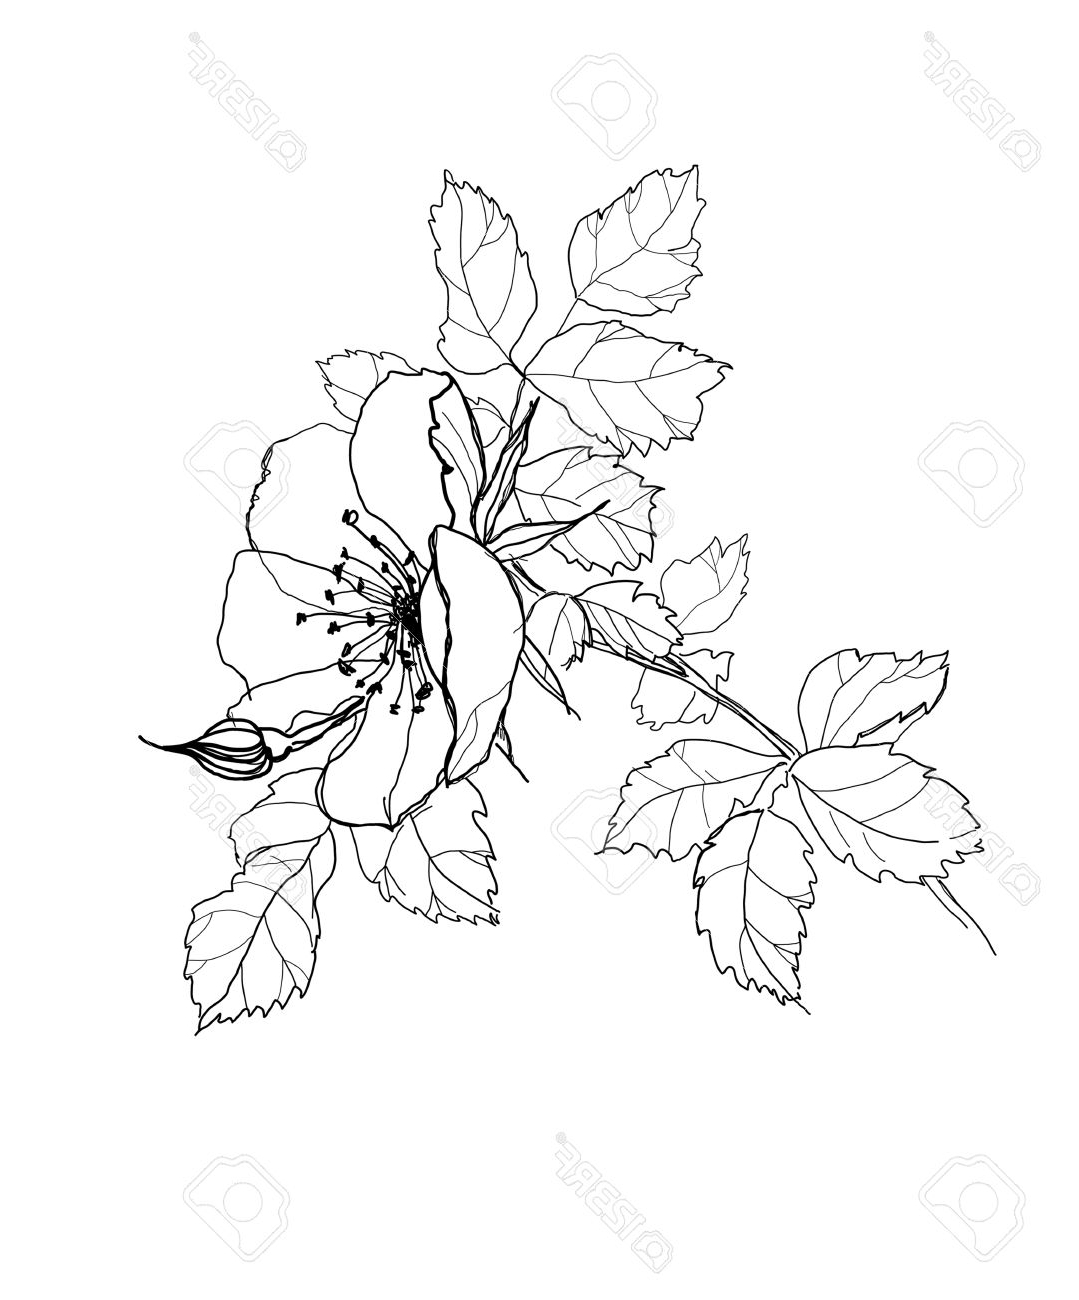 1079x1300 Out Line Pencil Sketch Of Rose Flower Rose Picture Drawing Rose